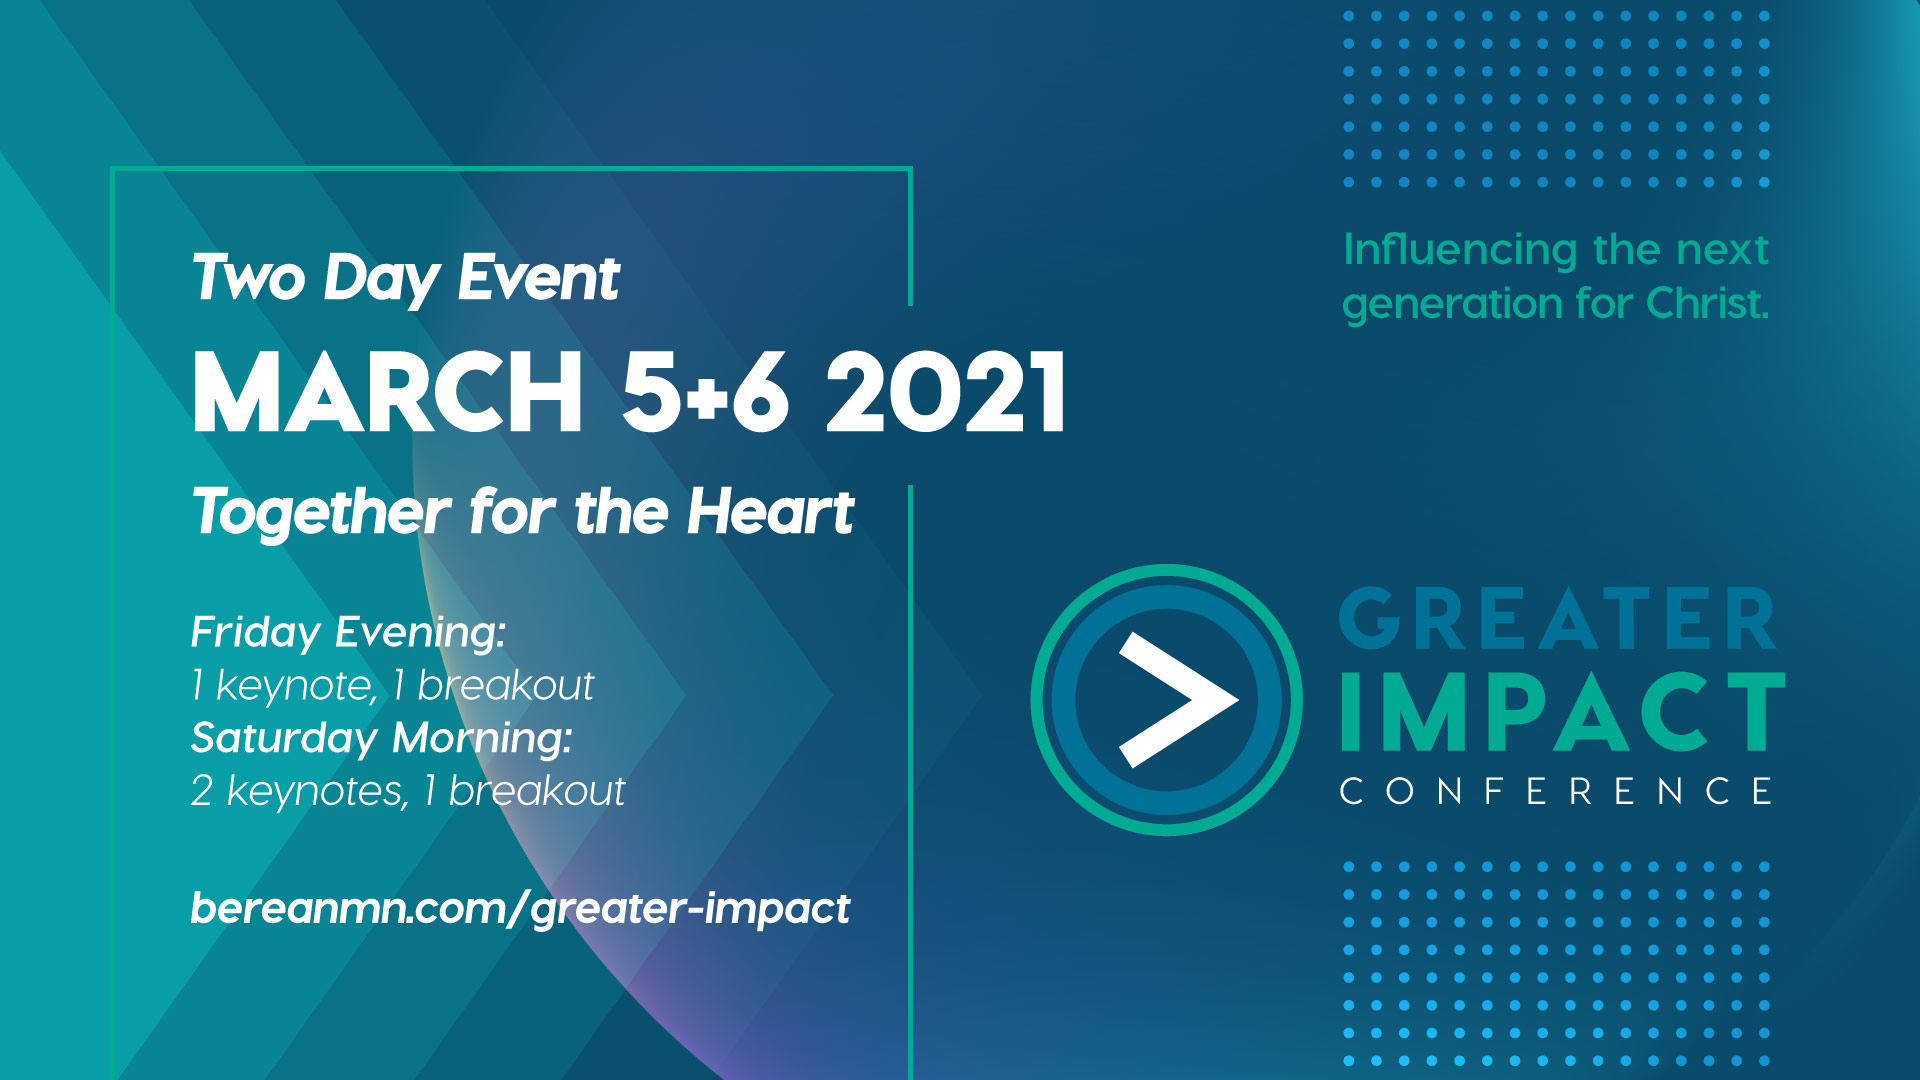 greater impact conference